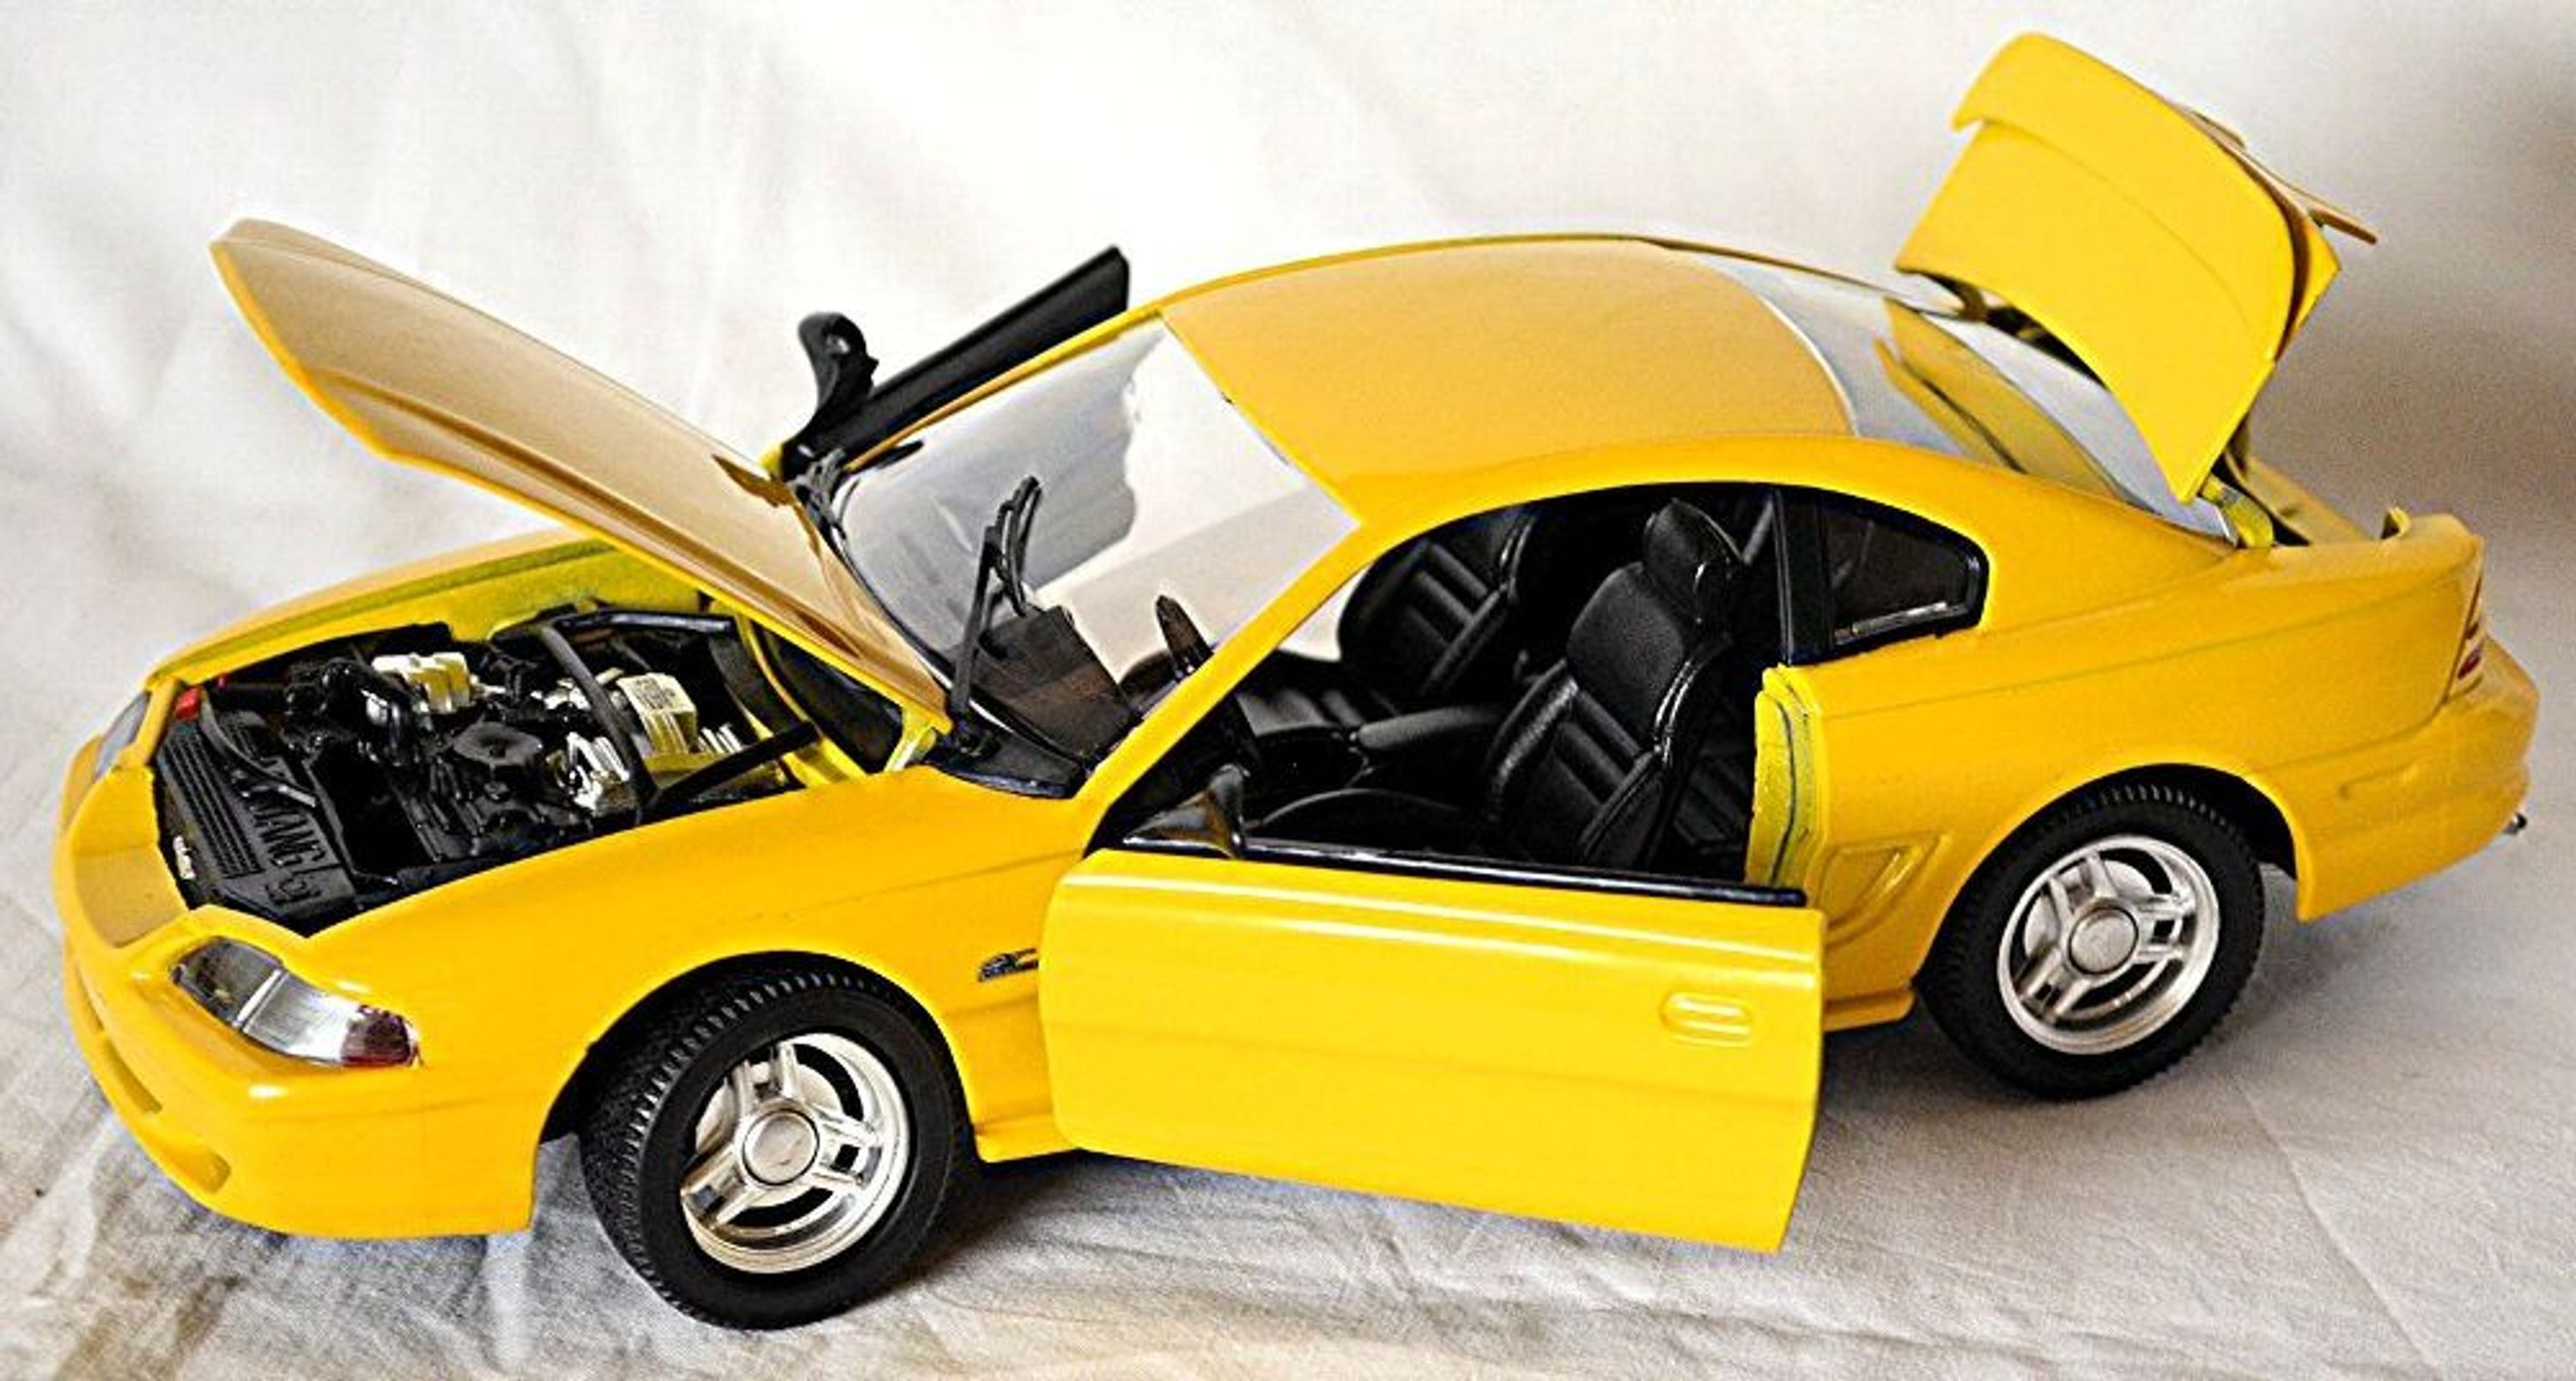 ford mustang iv gt coupe 1994 98 gelb yellow 1 18 jouef. Black Bedroom Furniture Sets. Home Design Ideas